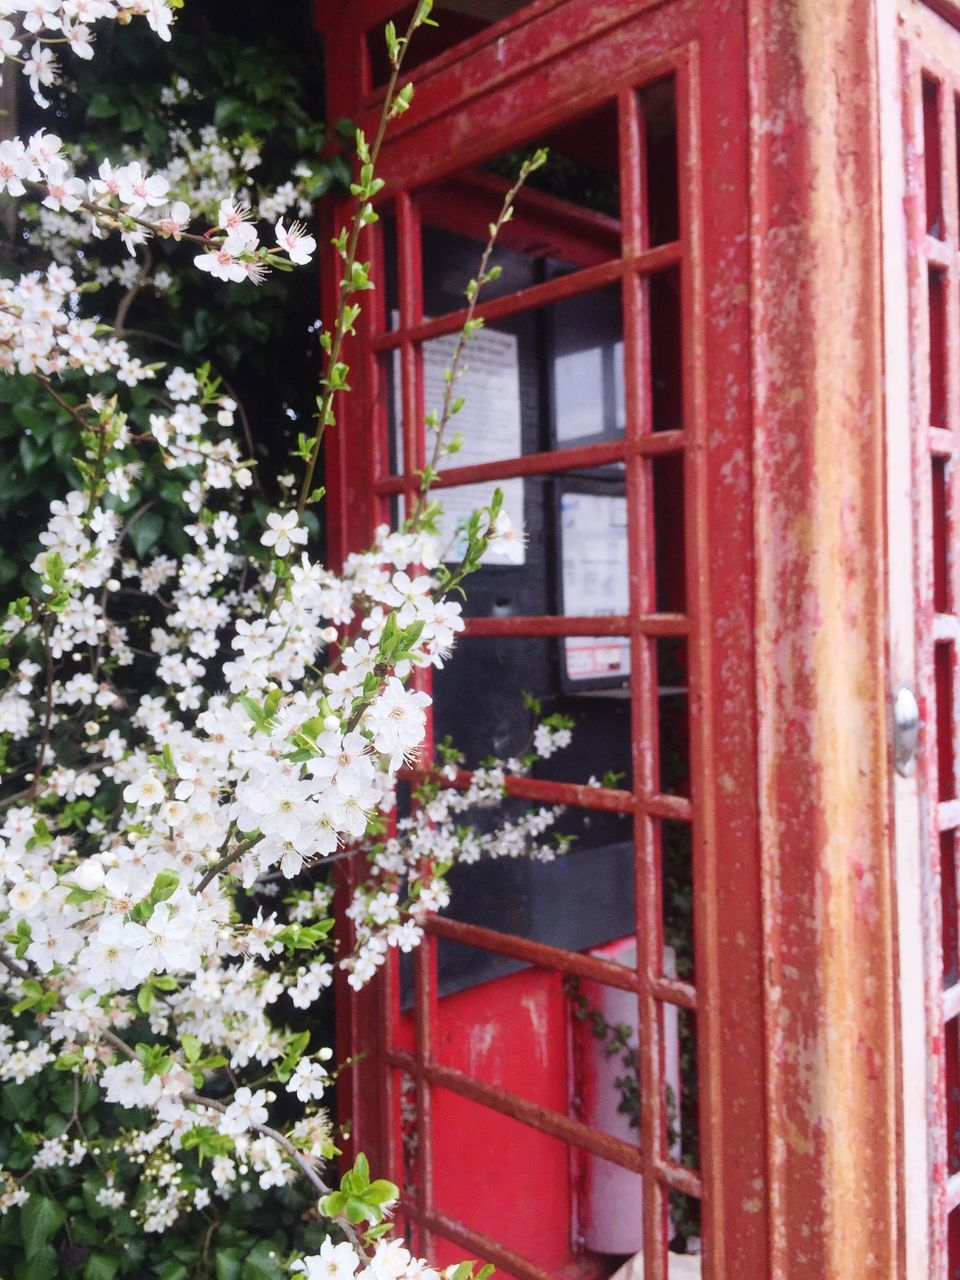 window, red, flower, architecture, building exterior, day, built structure, plant, outdoors, no people, nature, growth, fragility, beauty in nature, window box, leaf, tree, branch, close-up, freshness